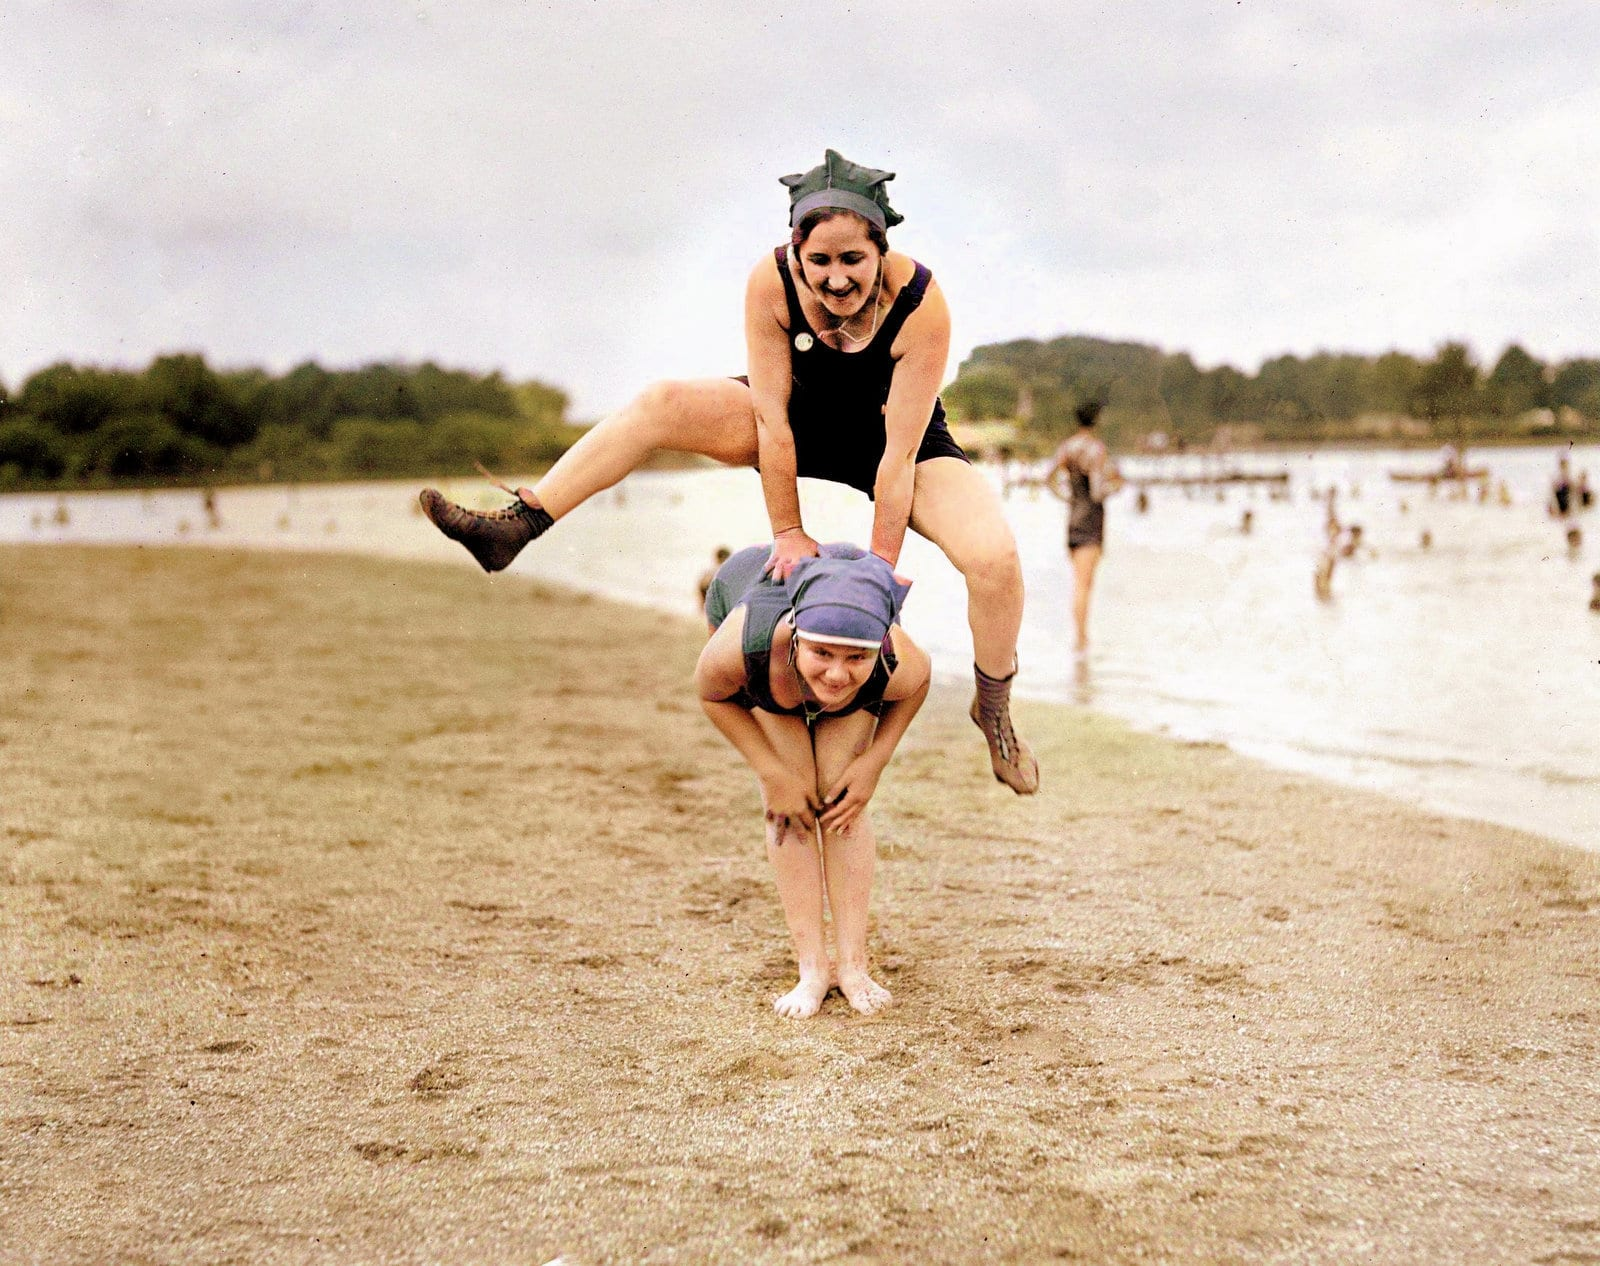 Playing leapfrog at the beach (1921)